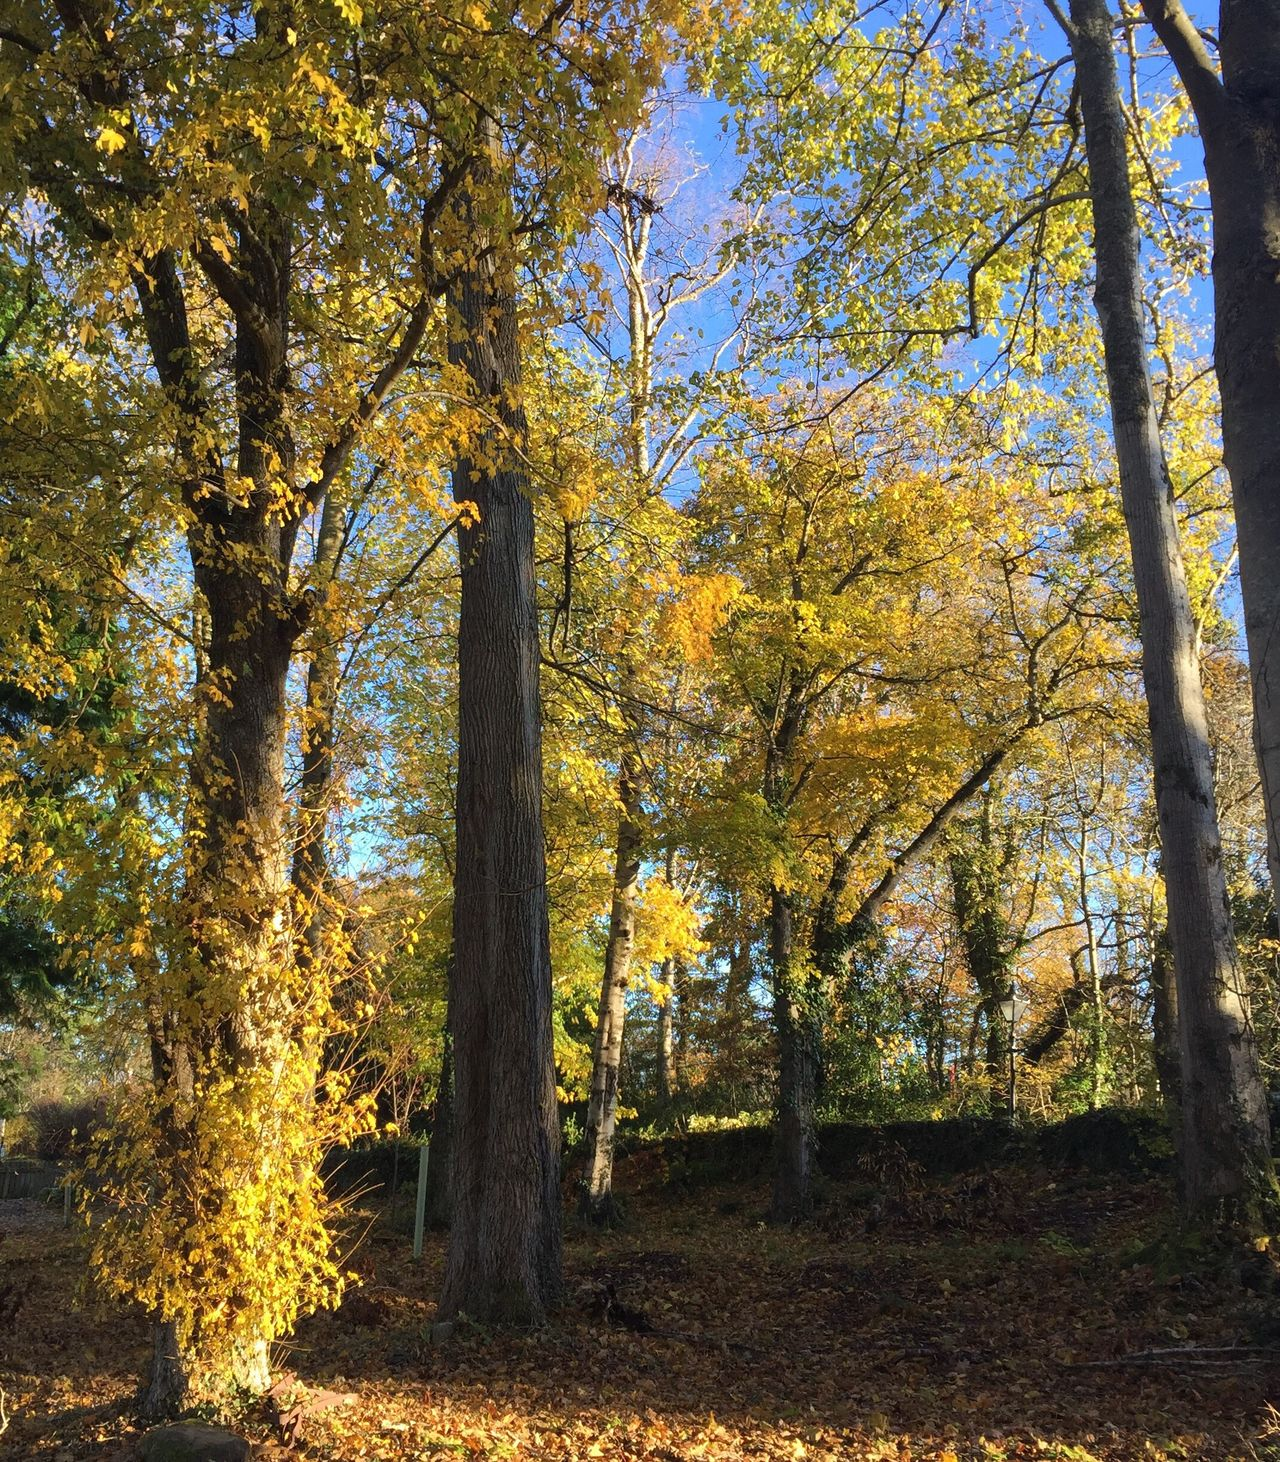 Forrest deciduous wood glorious clolours of autumn Tree Autumn Change Nature Beauty In Nature Growth Scenics Tranquility No People Outdoors Leaf Tranquil Scene Yellow Day Branch (null) Freshness Tranquility Non-urban Scene Beauty In Nature Sunlight Tree Growth Hello World Idyllic